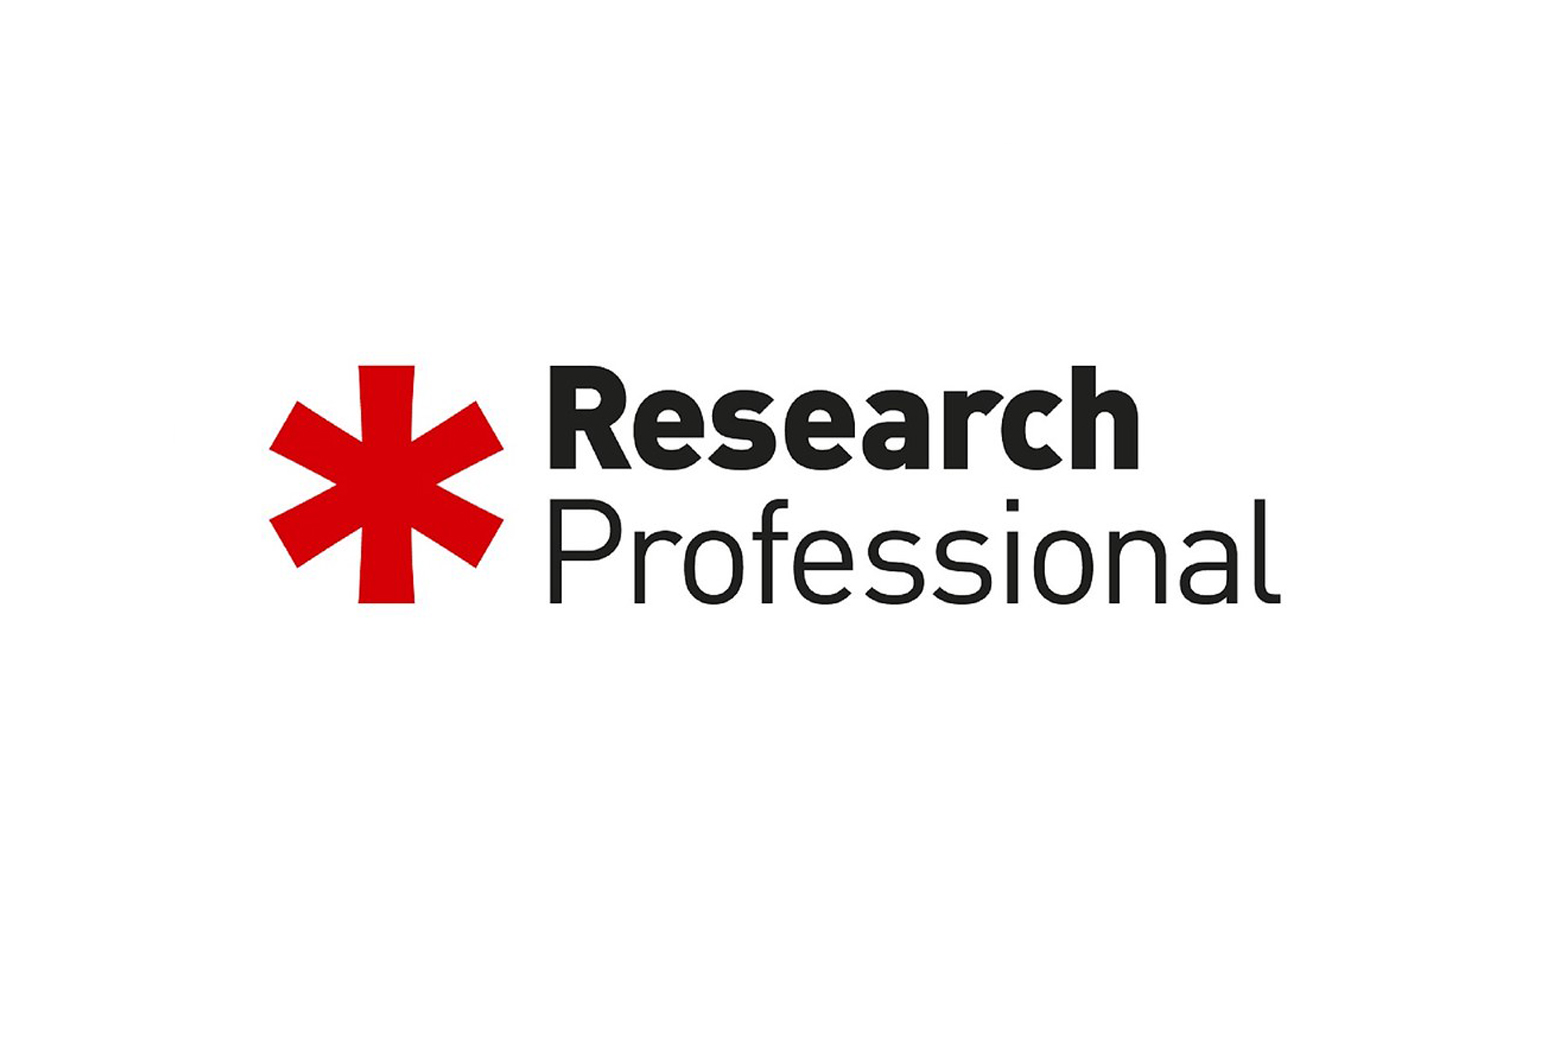 The Research Professional logo